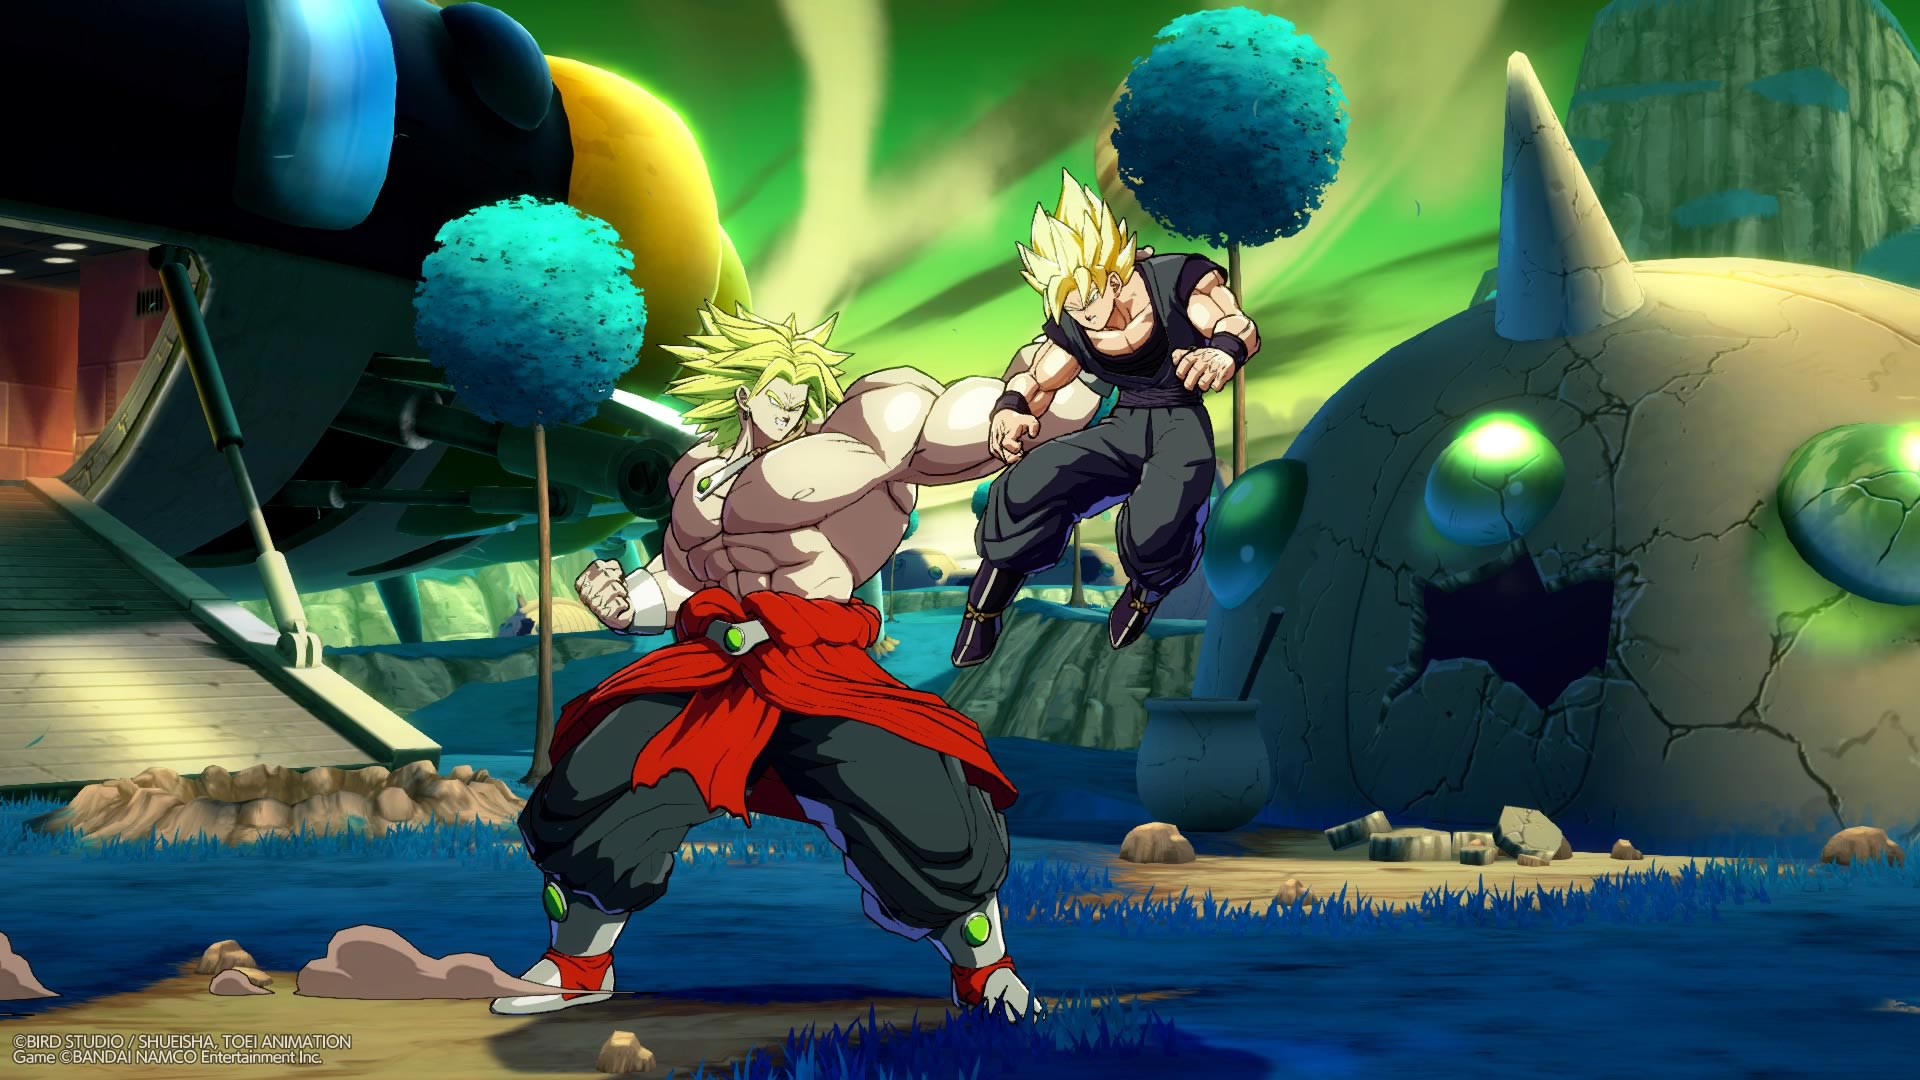 Broly and Bardock screenshots in Dragon Ball FighterZ 2 out of 12 image gallery